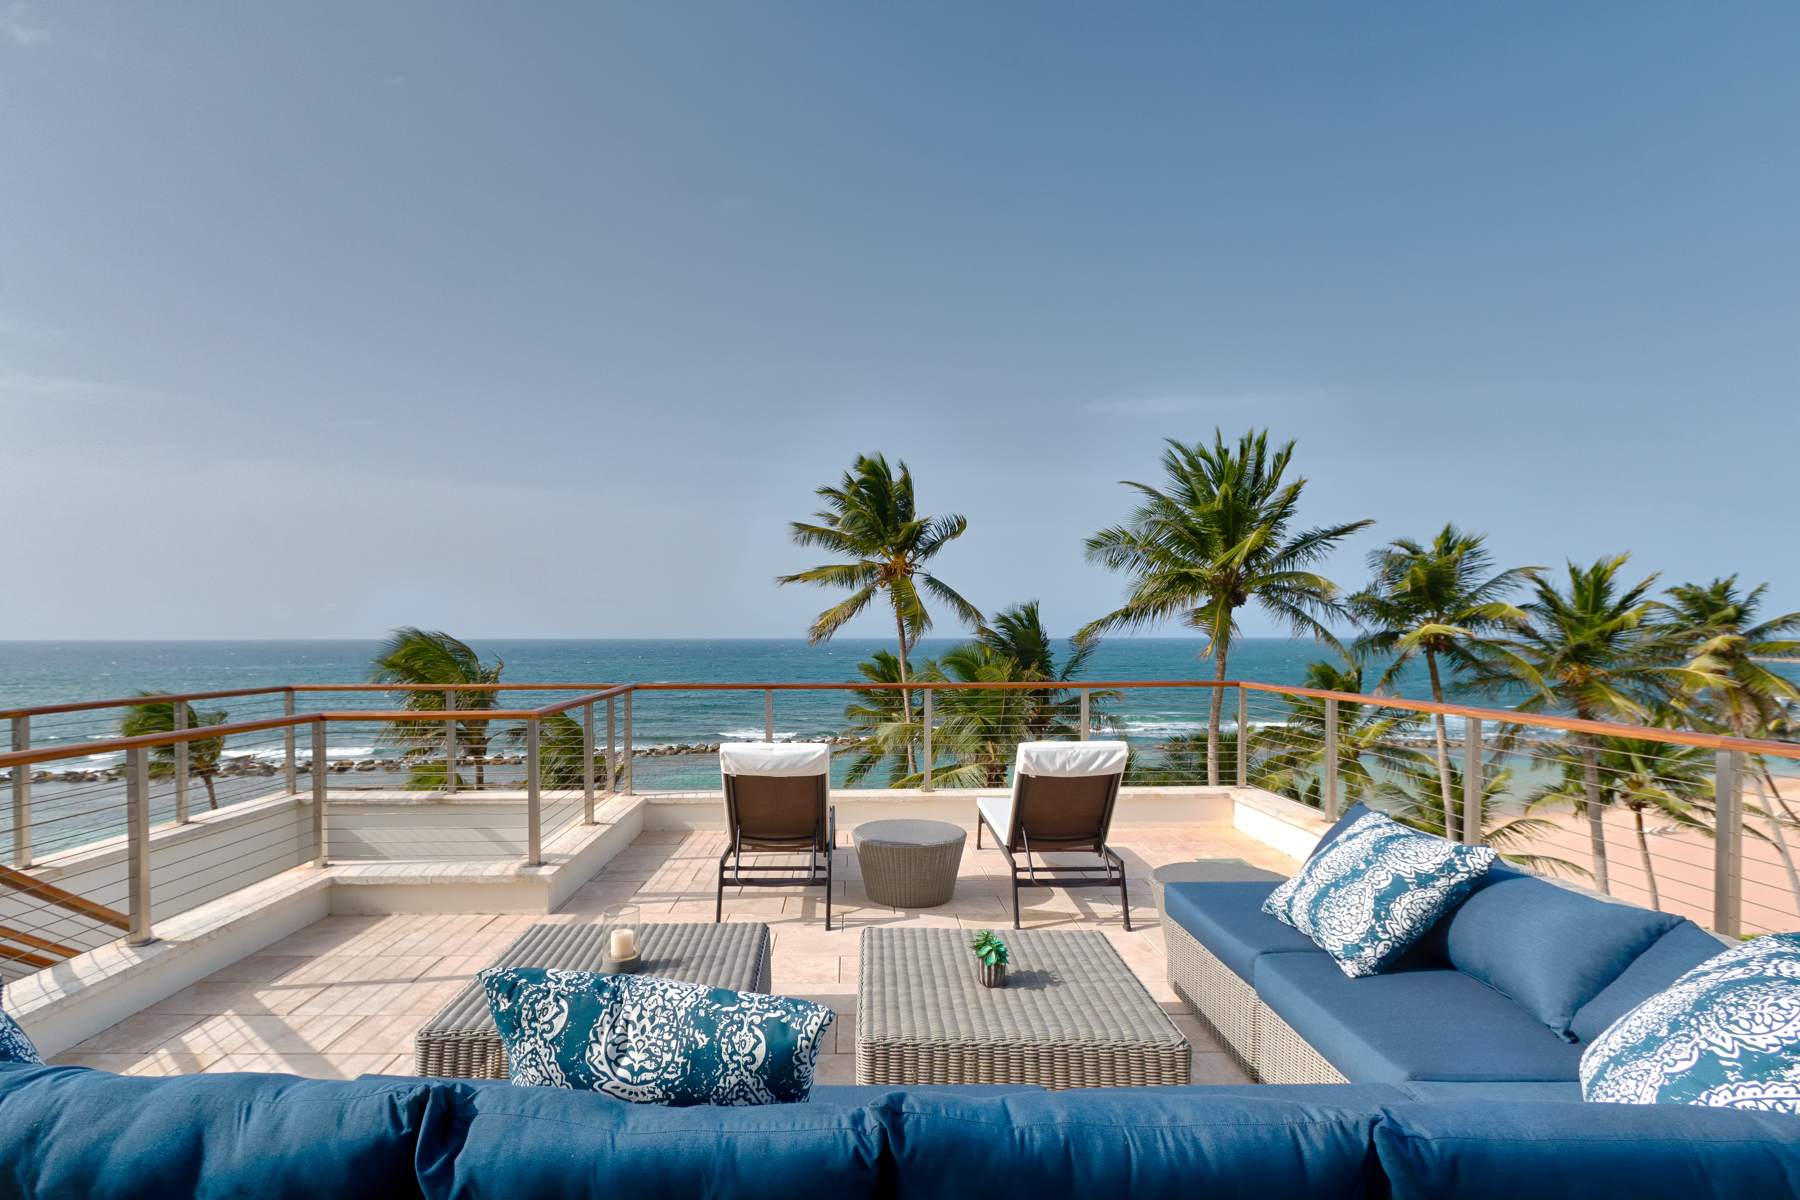 Appartement voor Verkoop een t Branded Beachfront Sanctuary - Penthouse 3641 200 Dorado Beach Drive Ritz Carlton Reserve Dorado Beach, Puerto Rico 00646 Puerto Rico